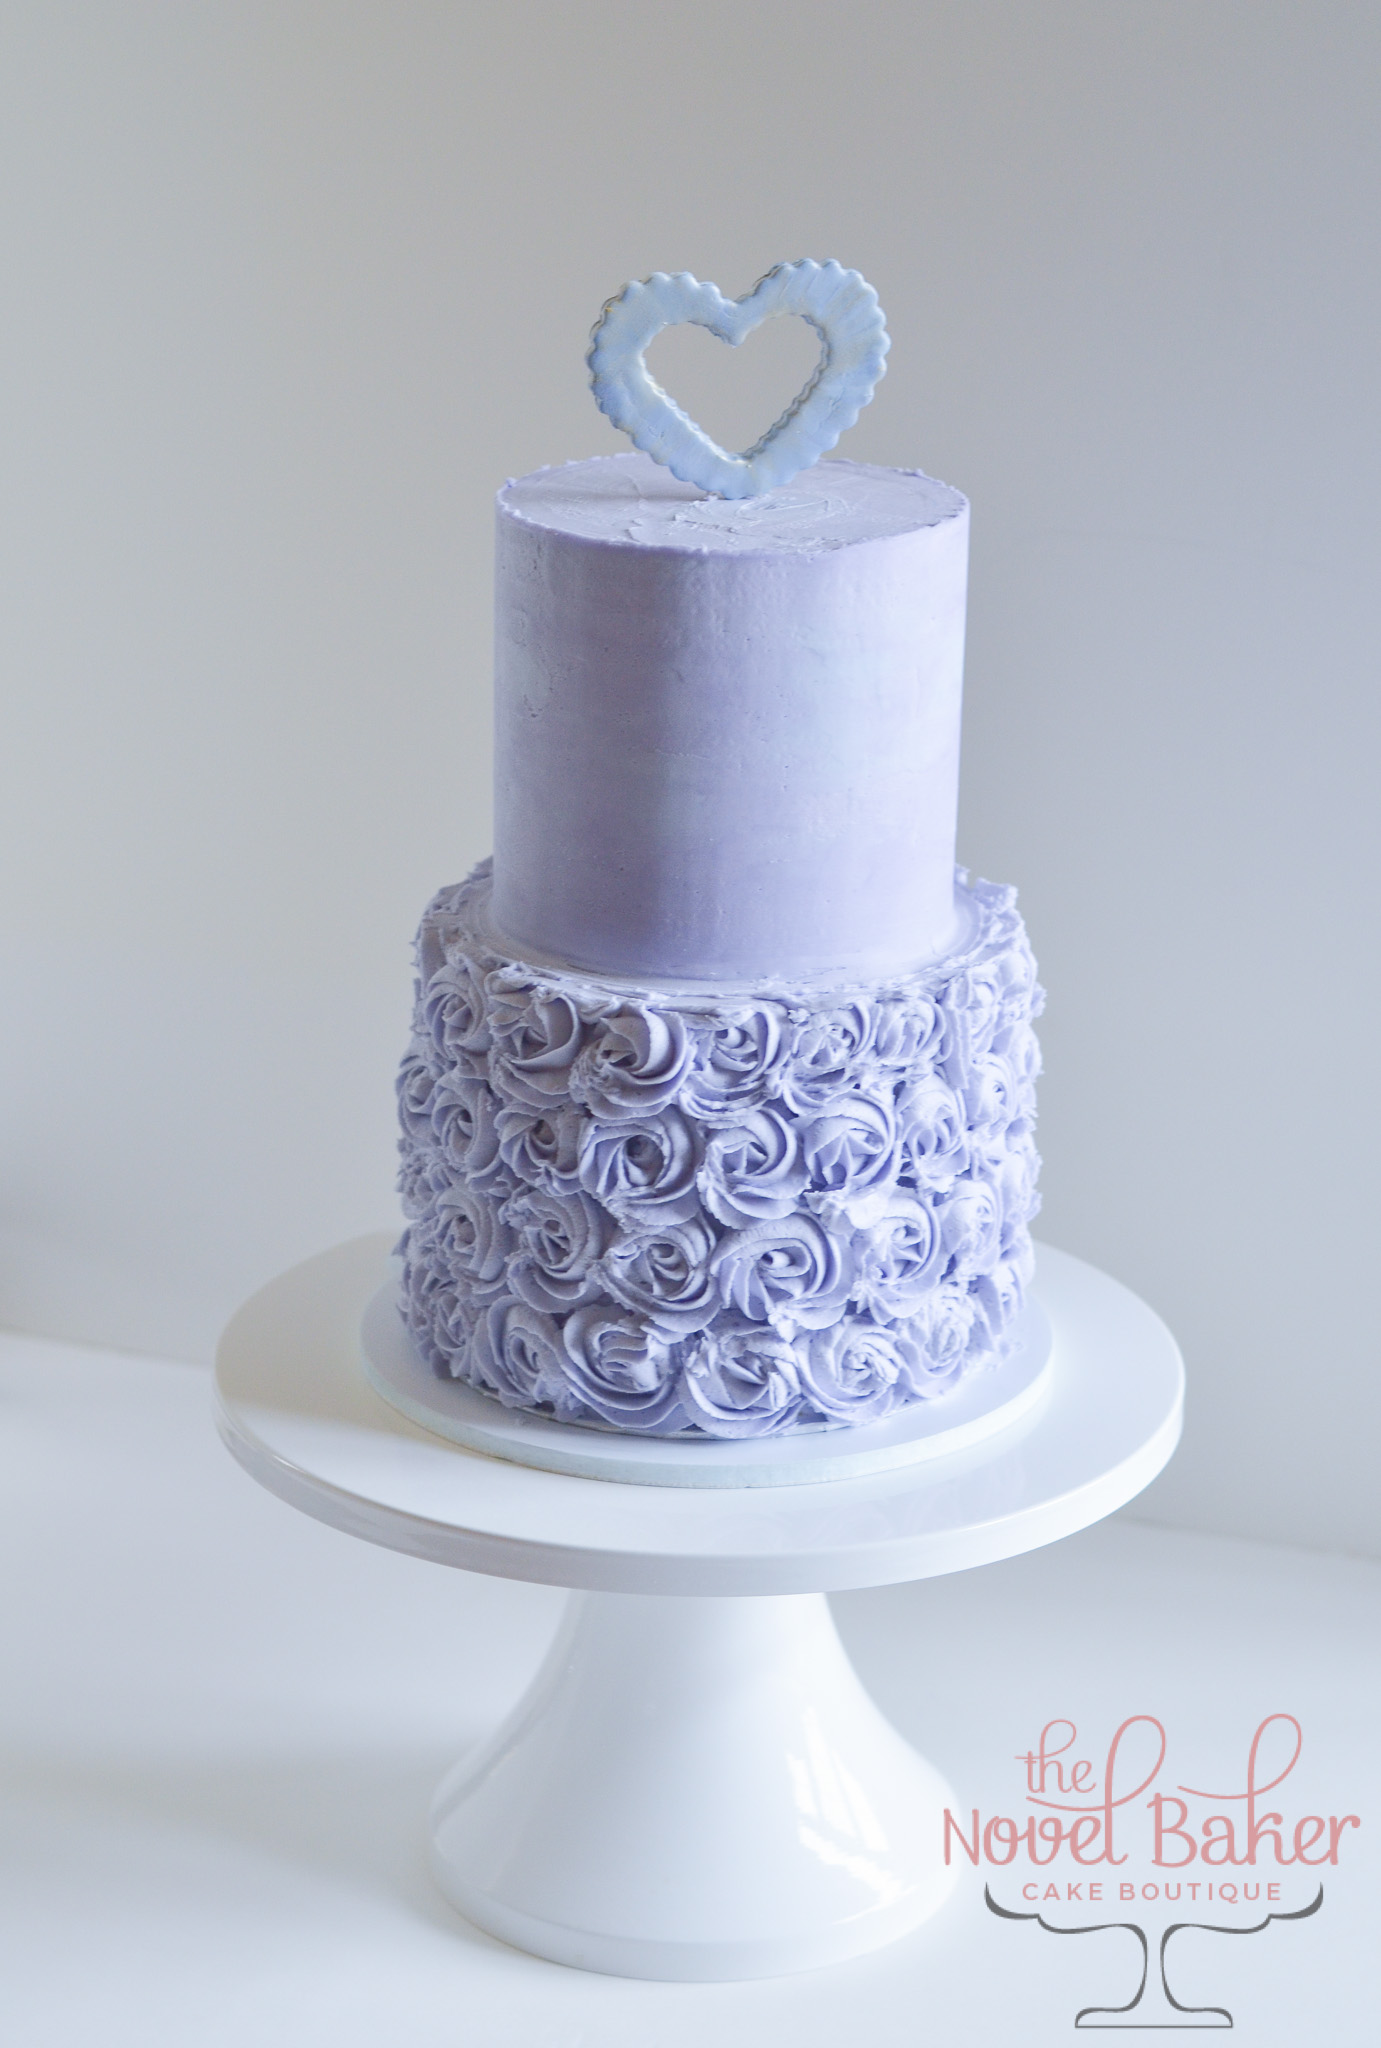 Two-tier lavender buttercream cake with a bottom tier of rosettes and a light blue peek-a-boo fondant heart topper.